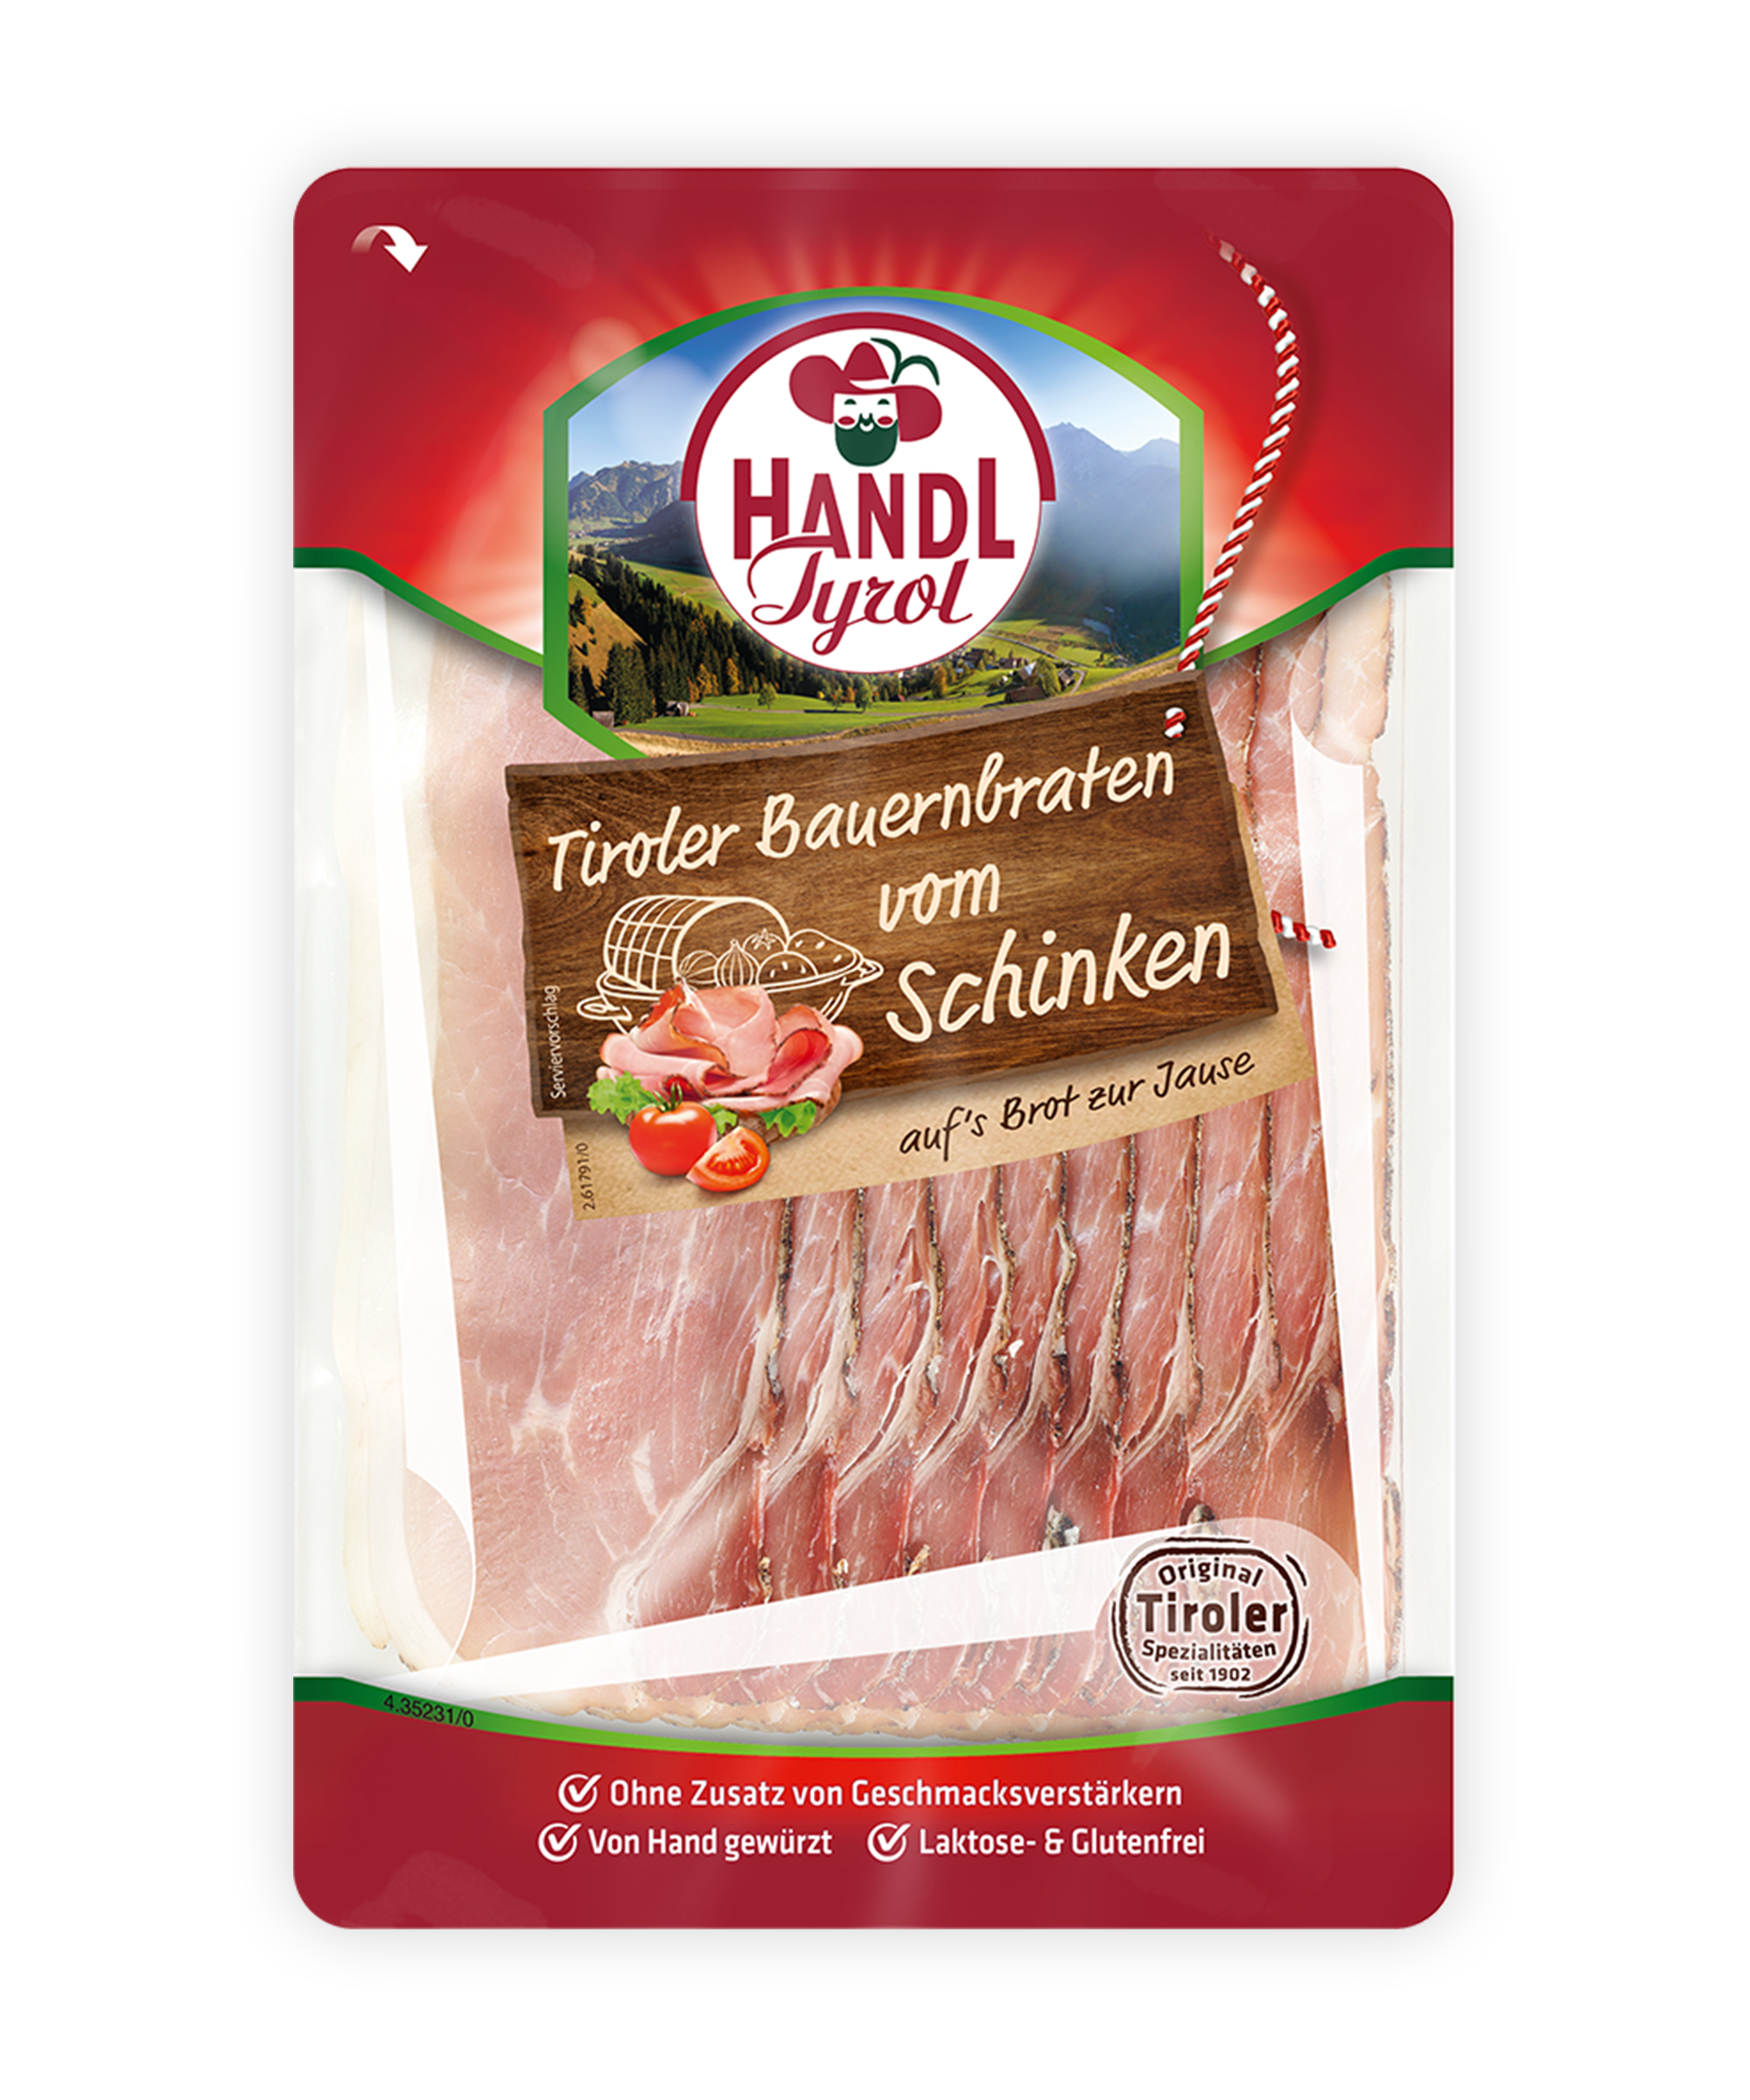 Ham clipart ham steak. Tyrolean roasted handl tyrol